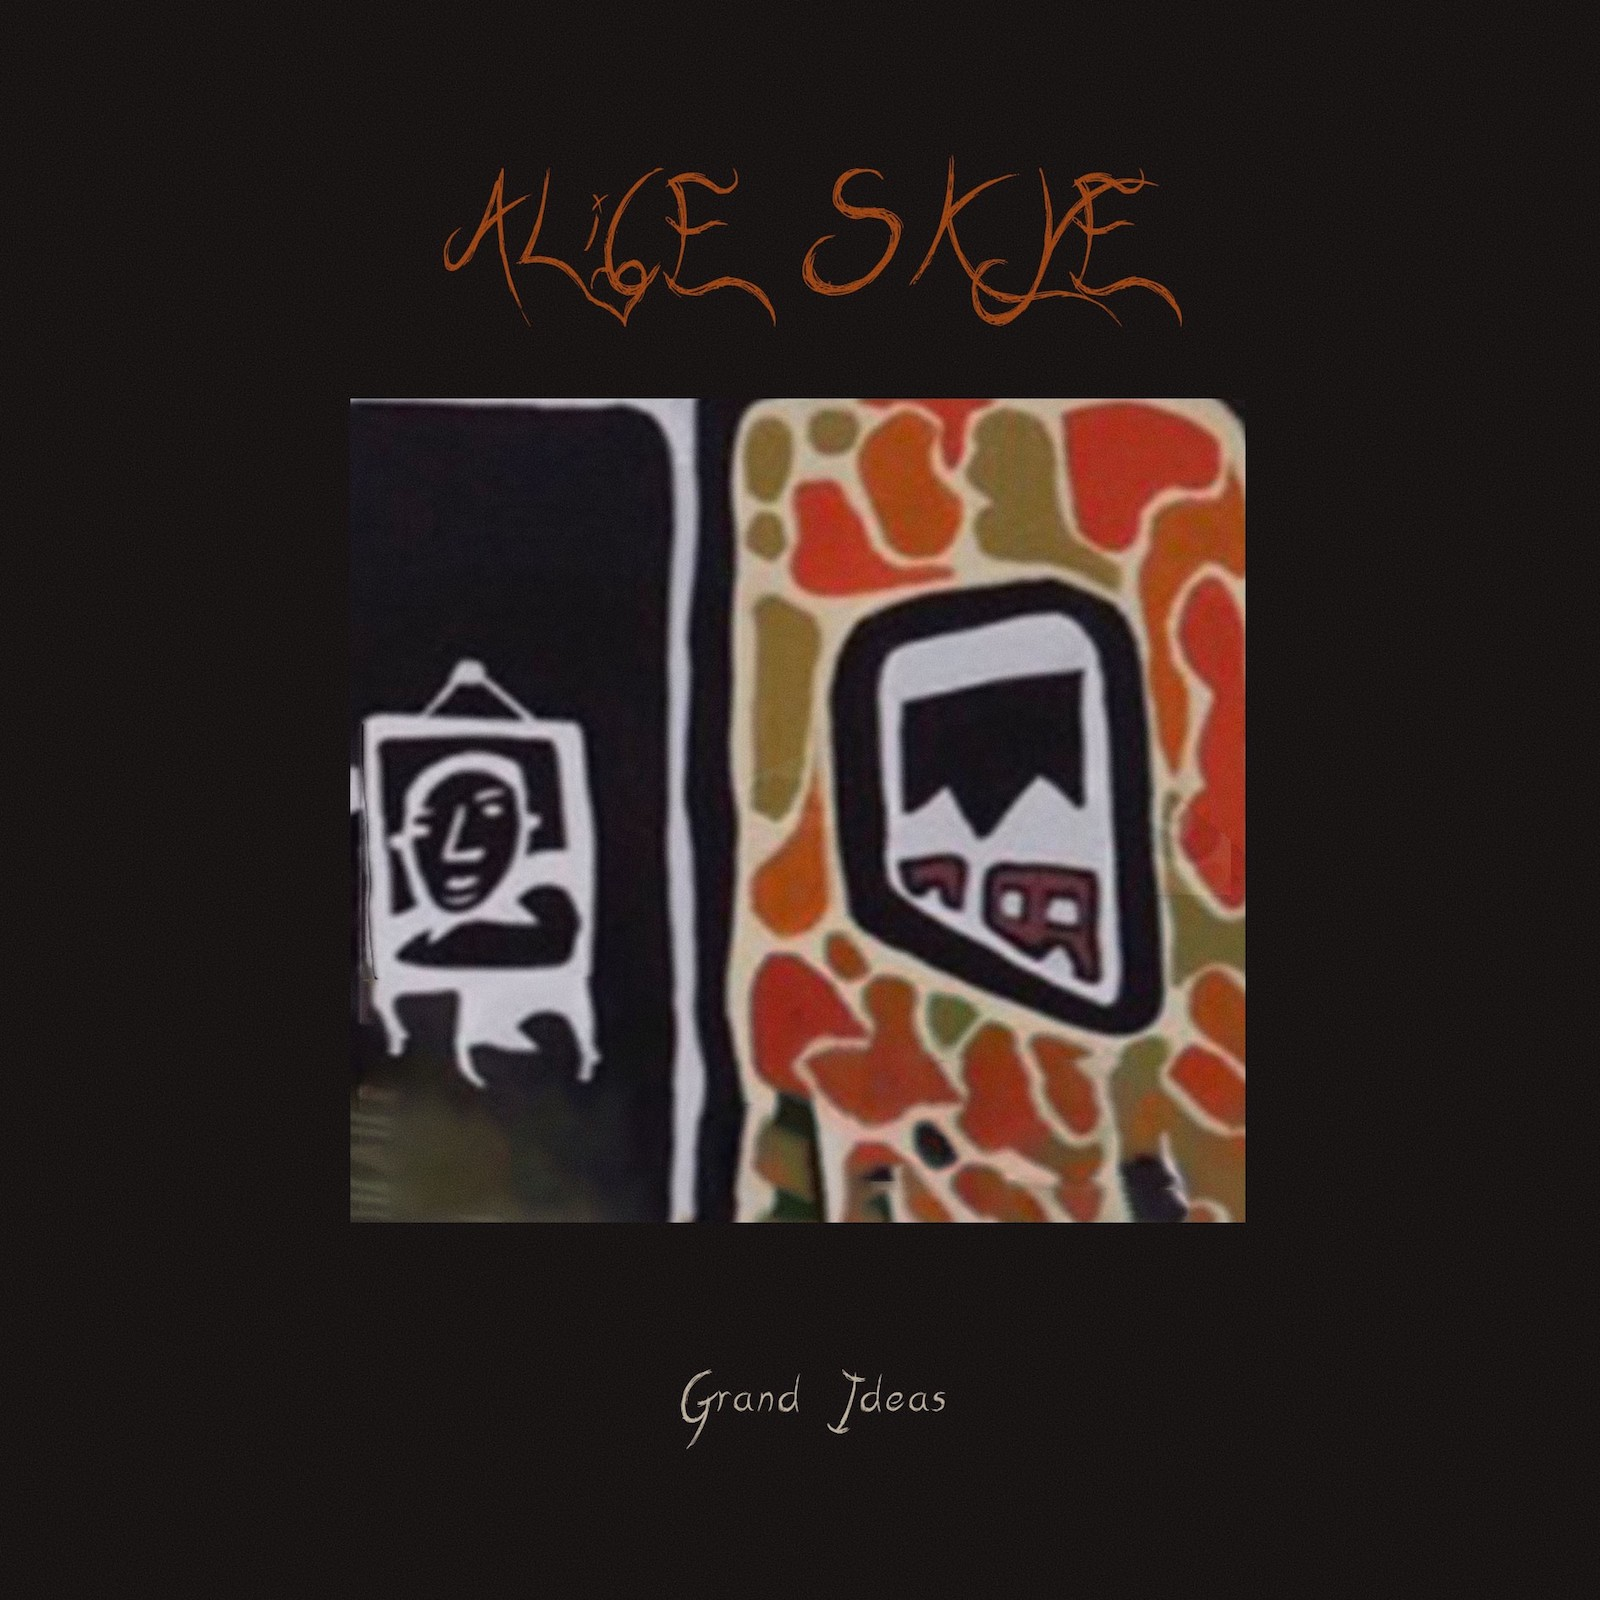 ALICE SKYE BACK WITH NEW SINGLE 'GRAND IDEAS'